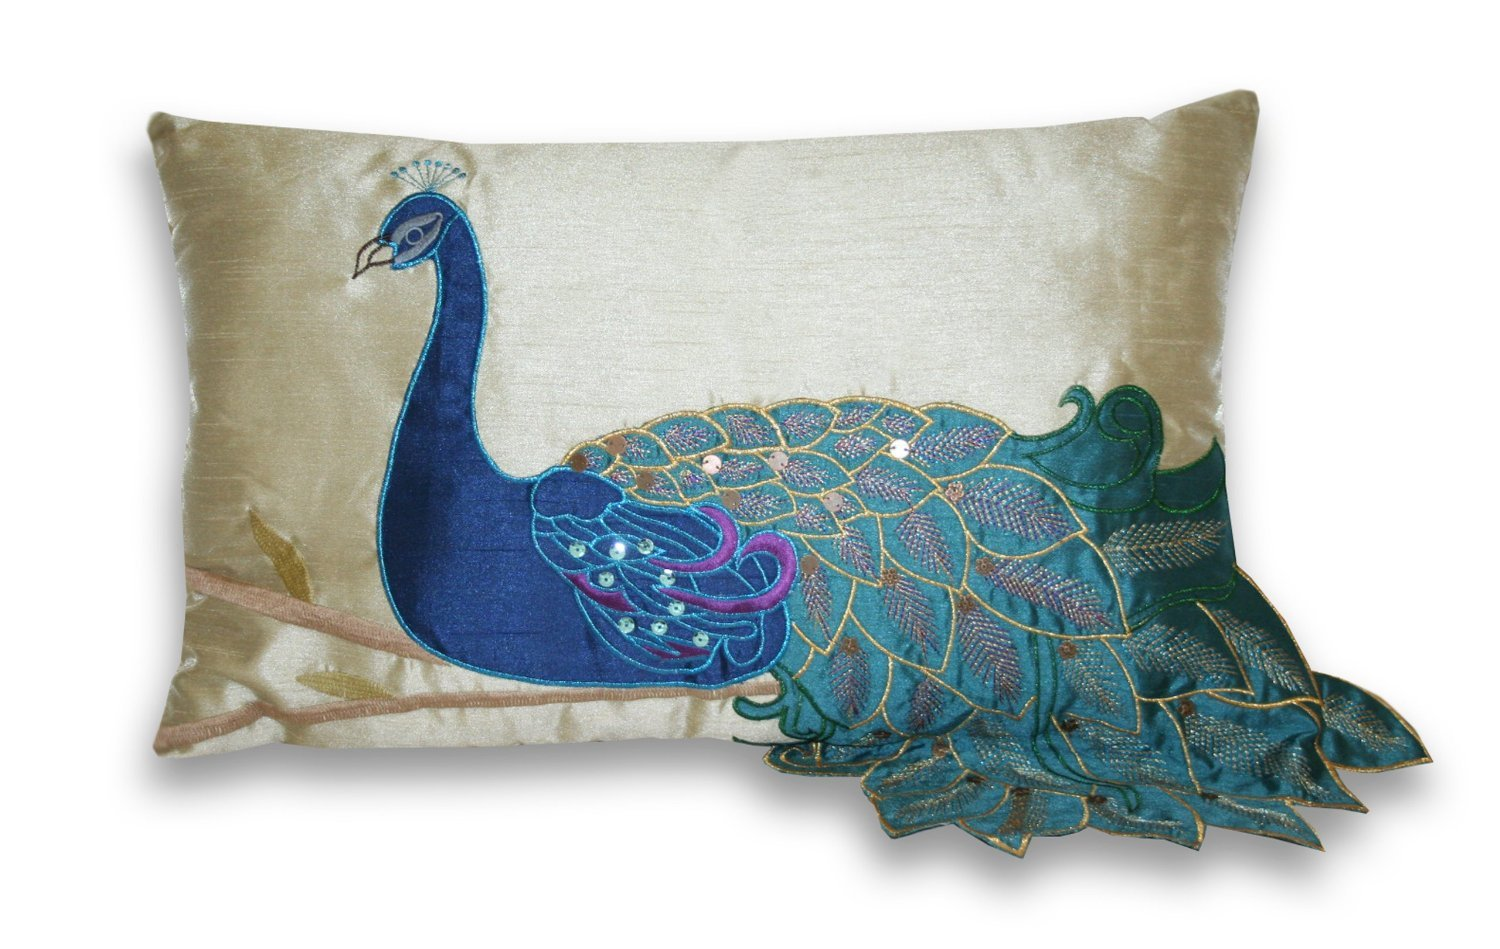 Fengh Fancy Elegant Vivid Peacock Decorative Throw Cushion Pillow